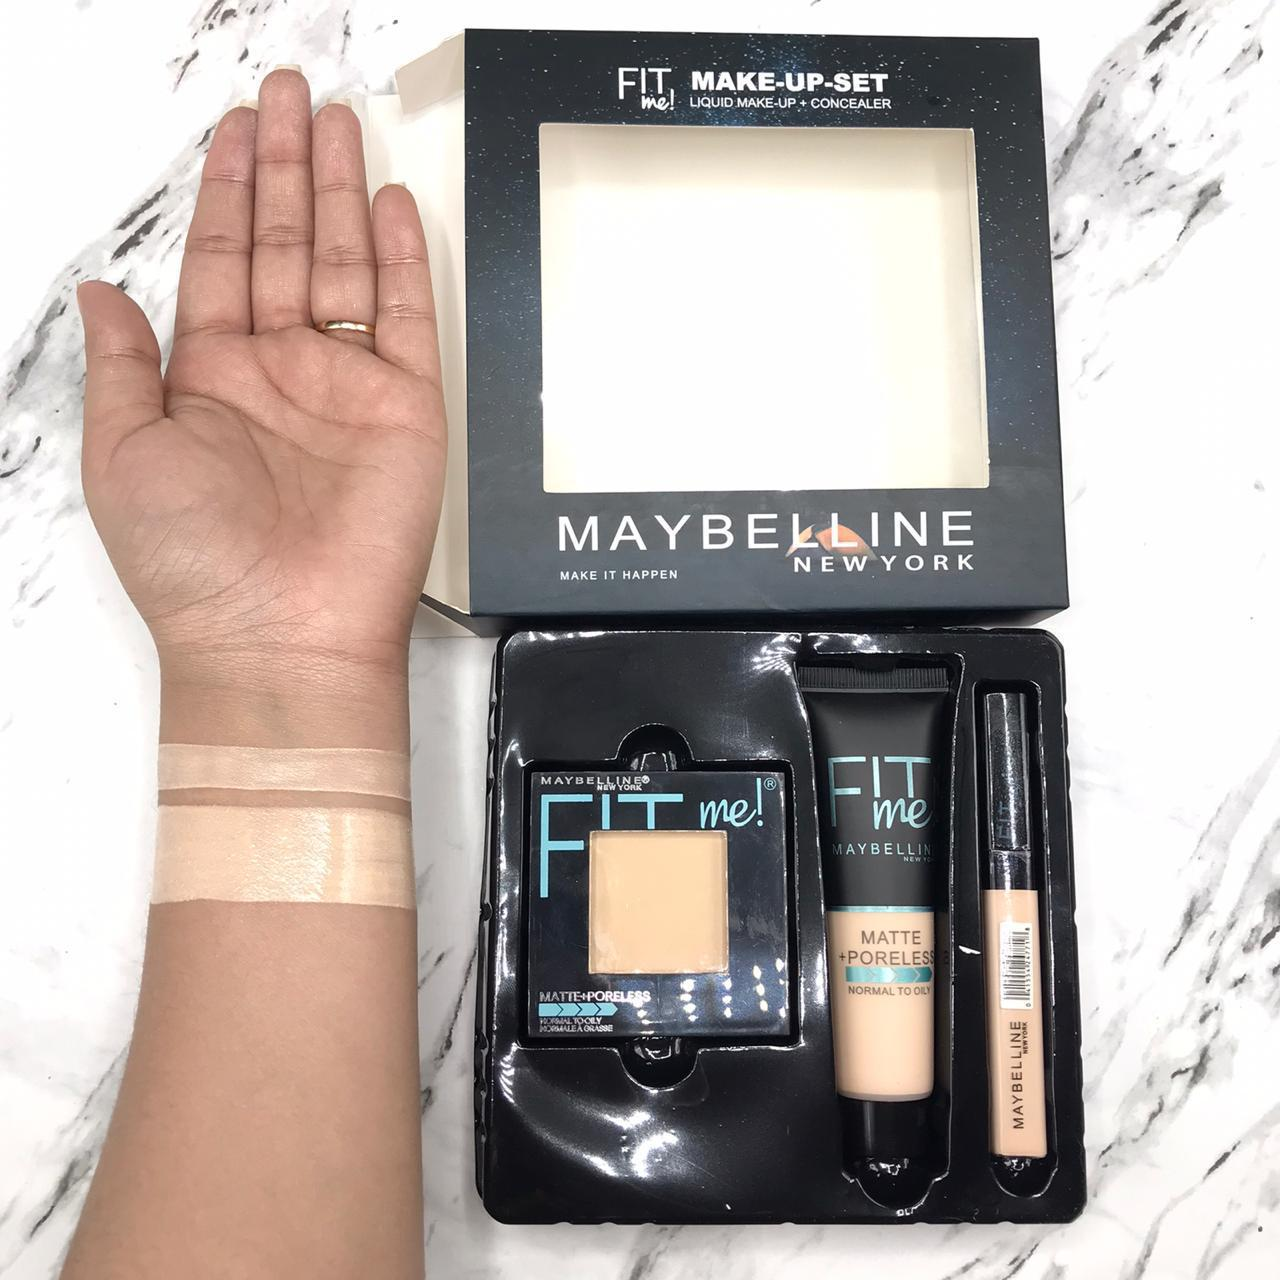 Maybelline fit Discounted Deal MBFT-001